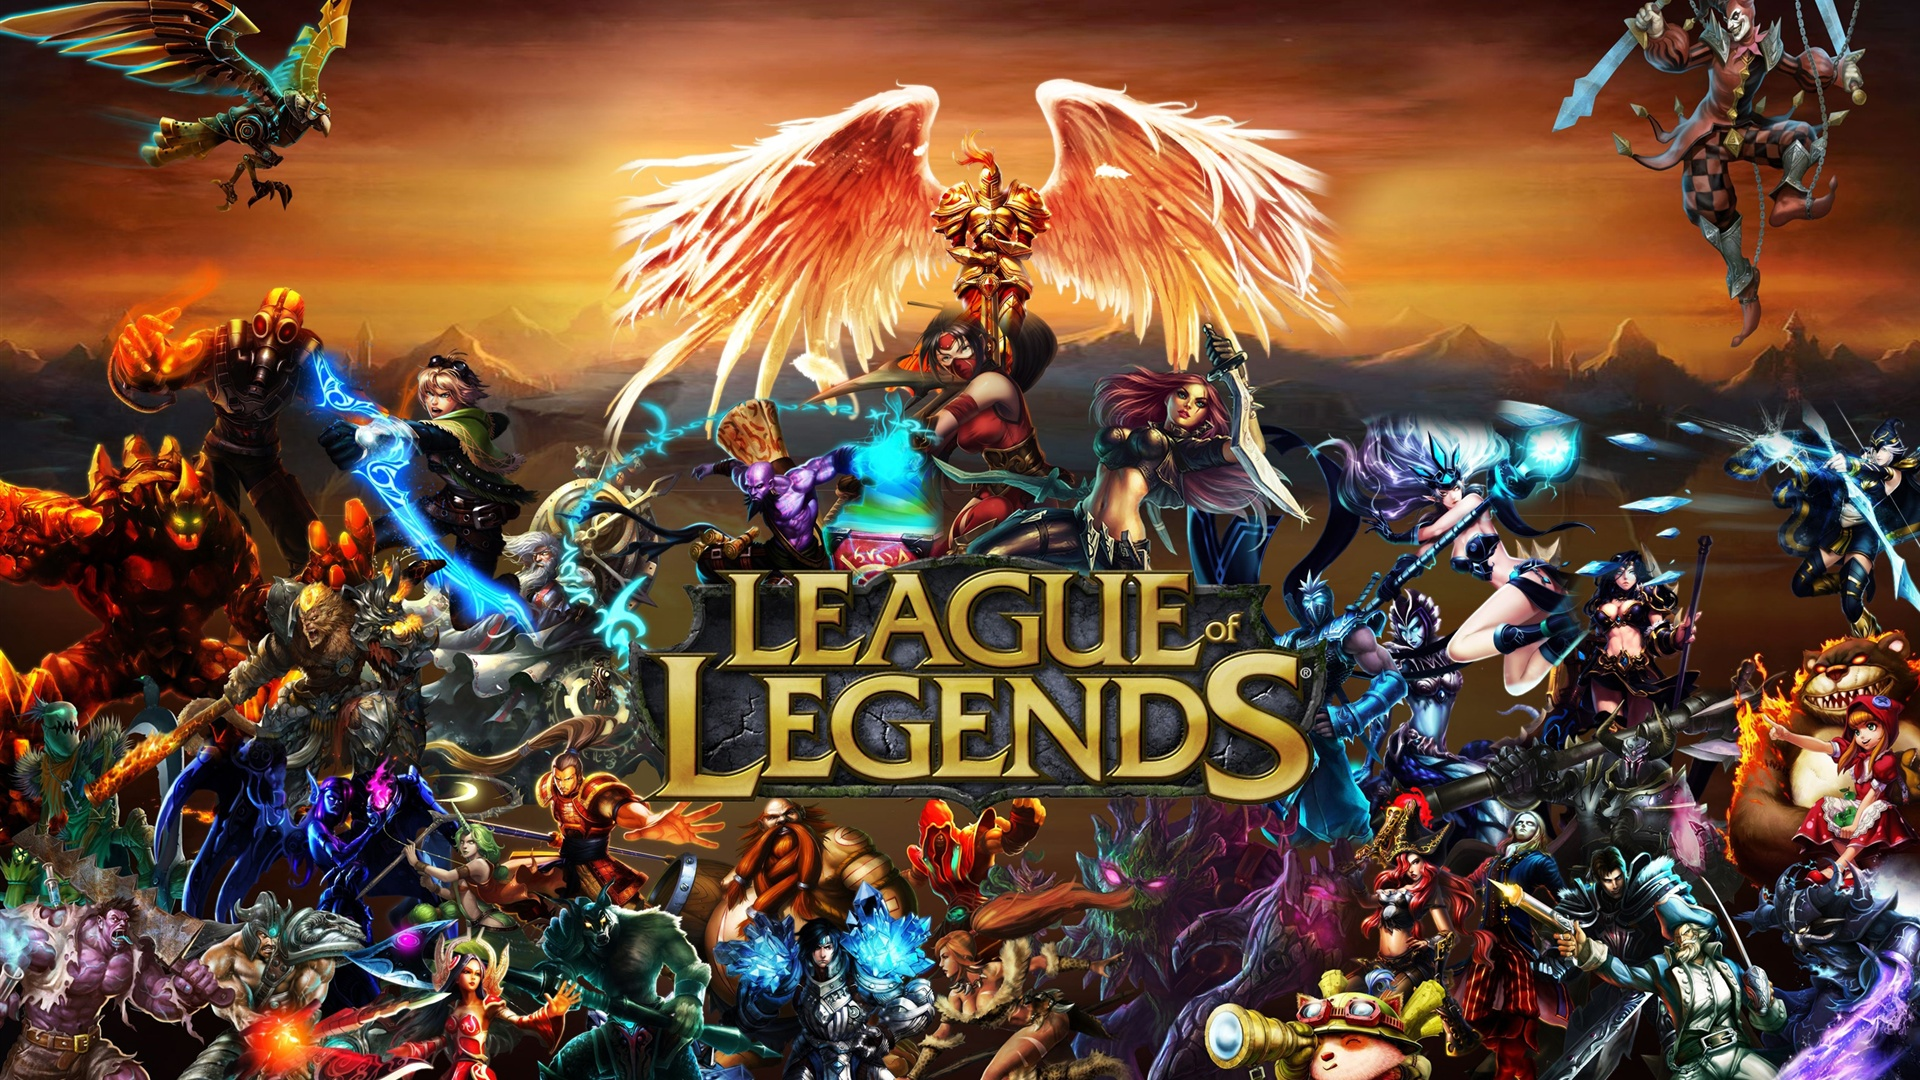 League Of Legends Wallpaper For Android ~ Sdeerwallpaper